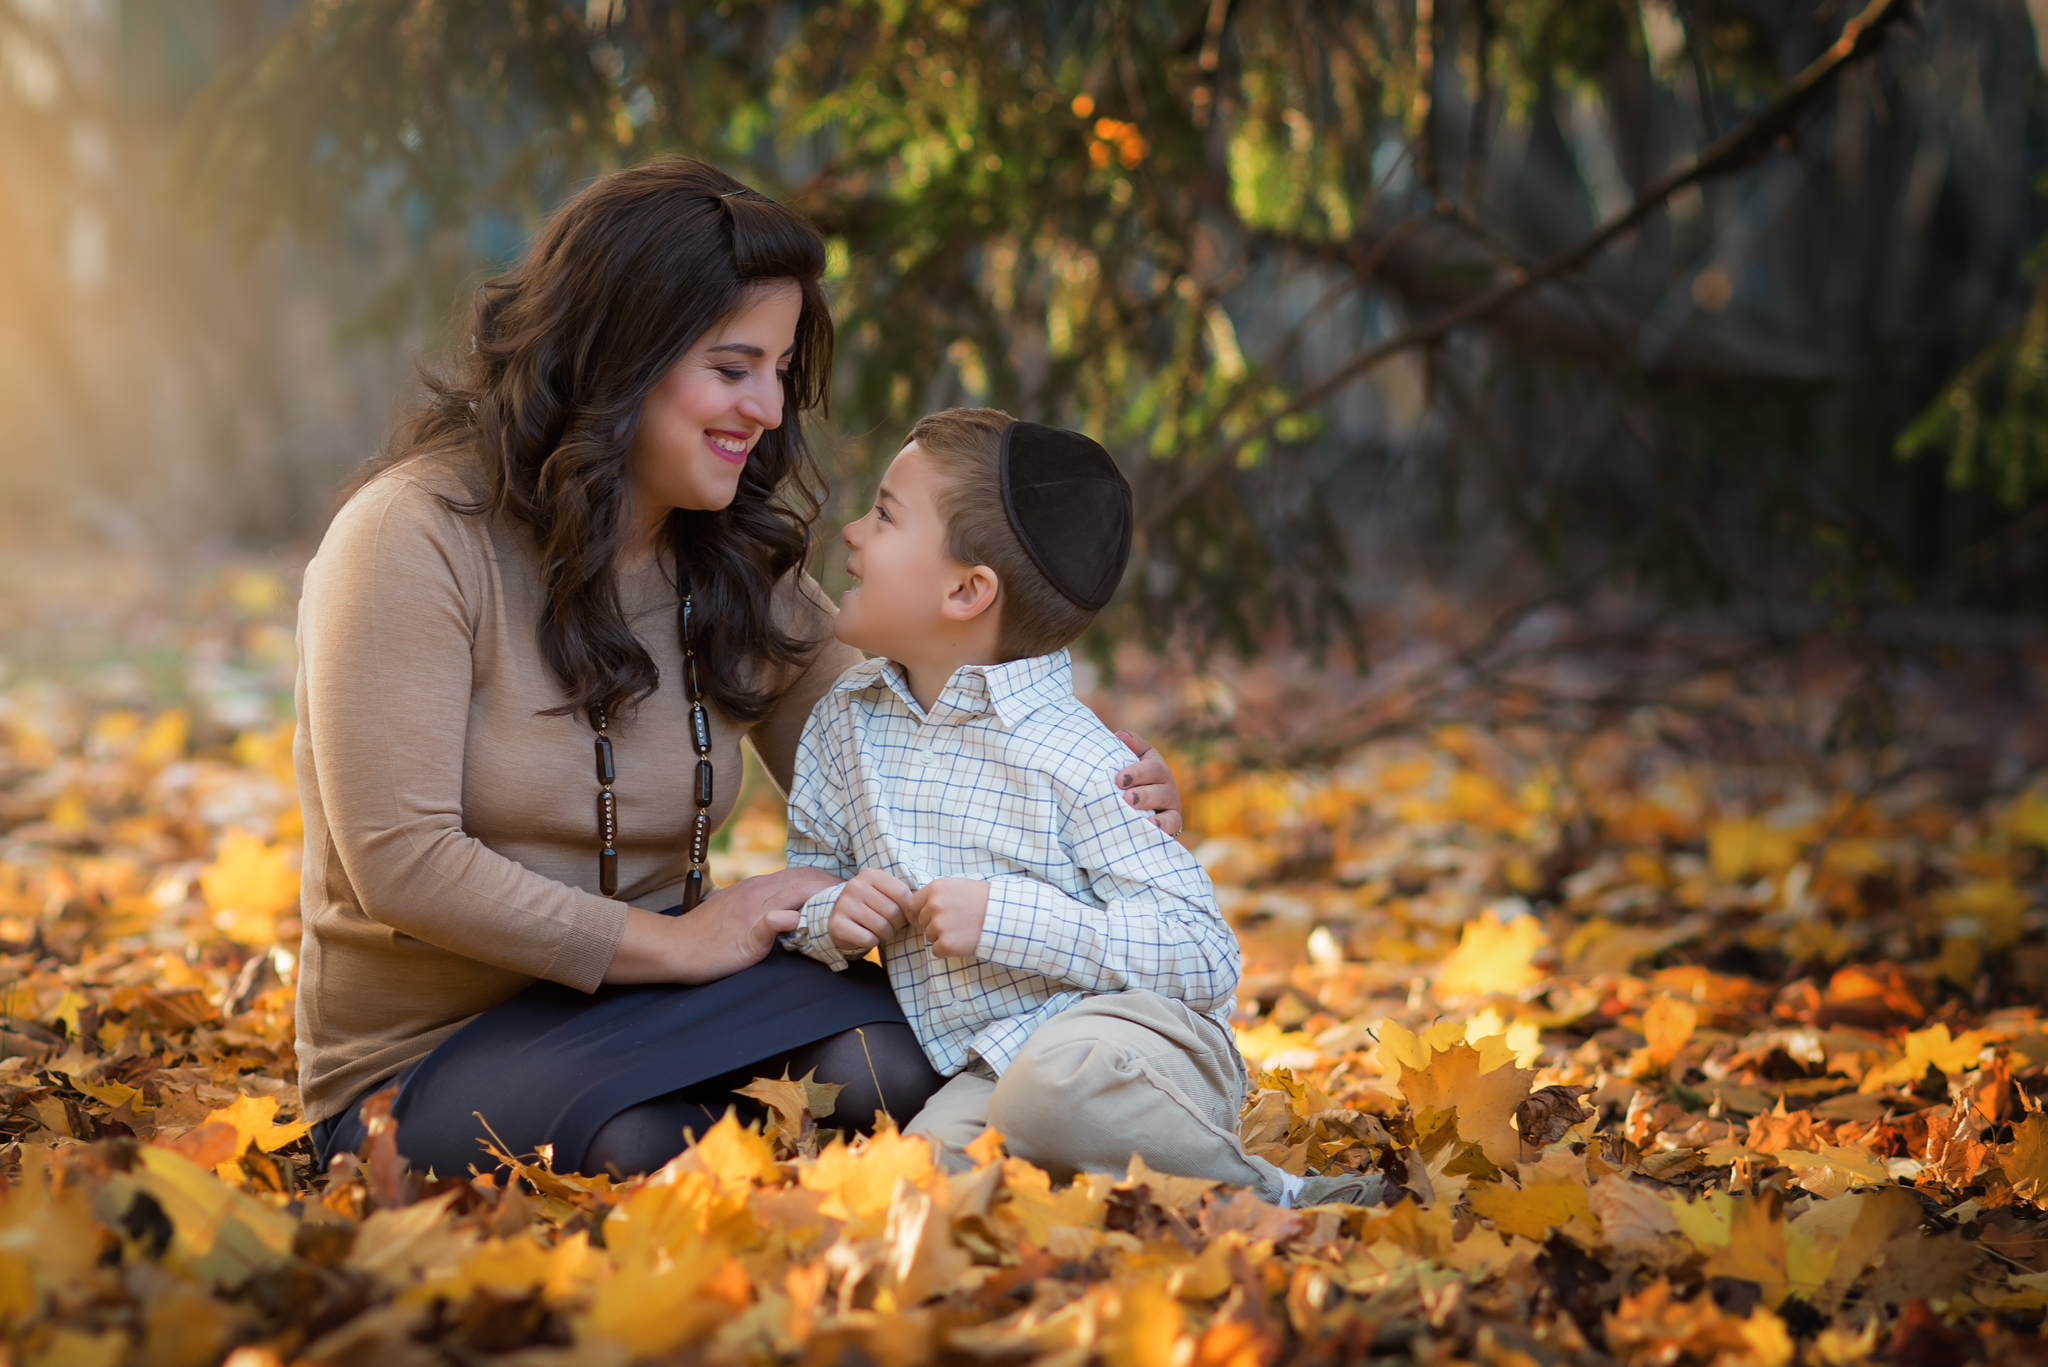 Mom and Daughter Moment by Fotoplicity